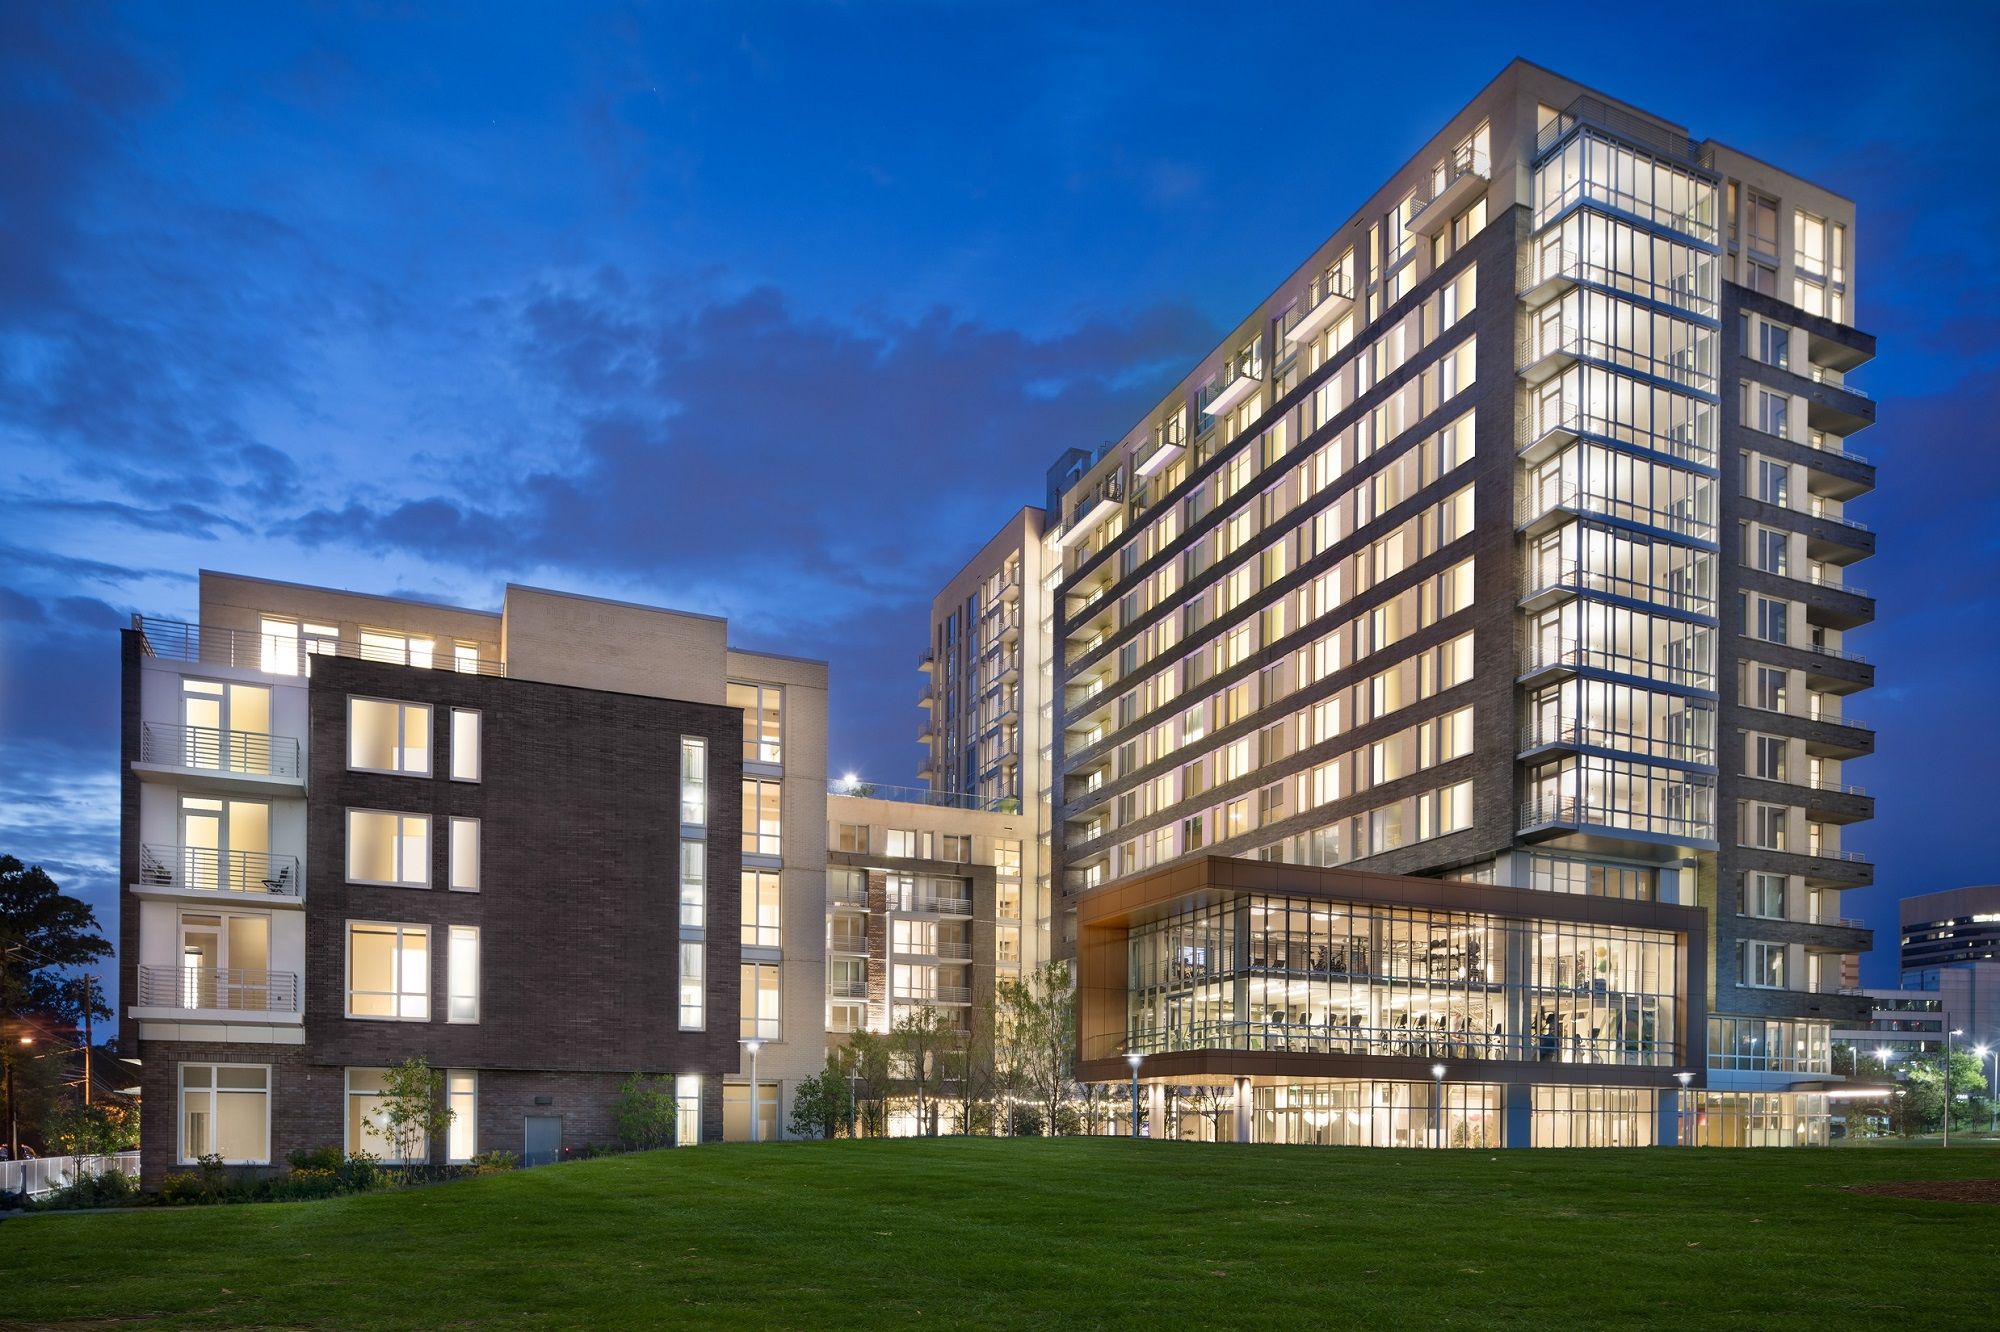 Boomers, Families Flock To D.C. Area Renovation